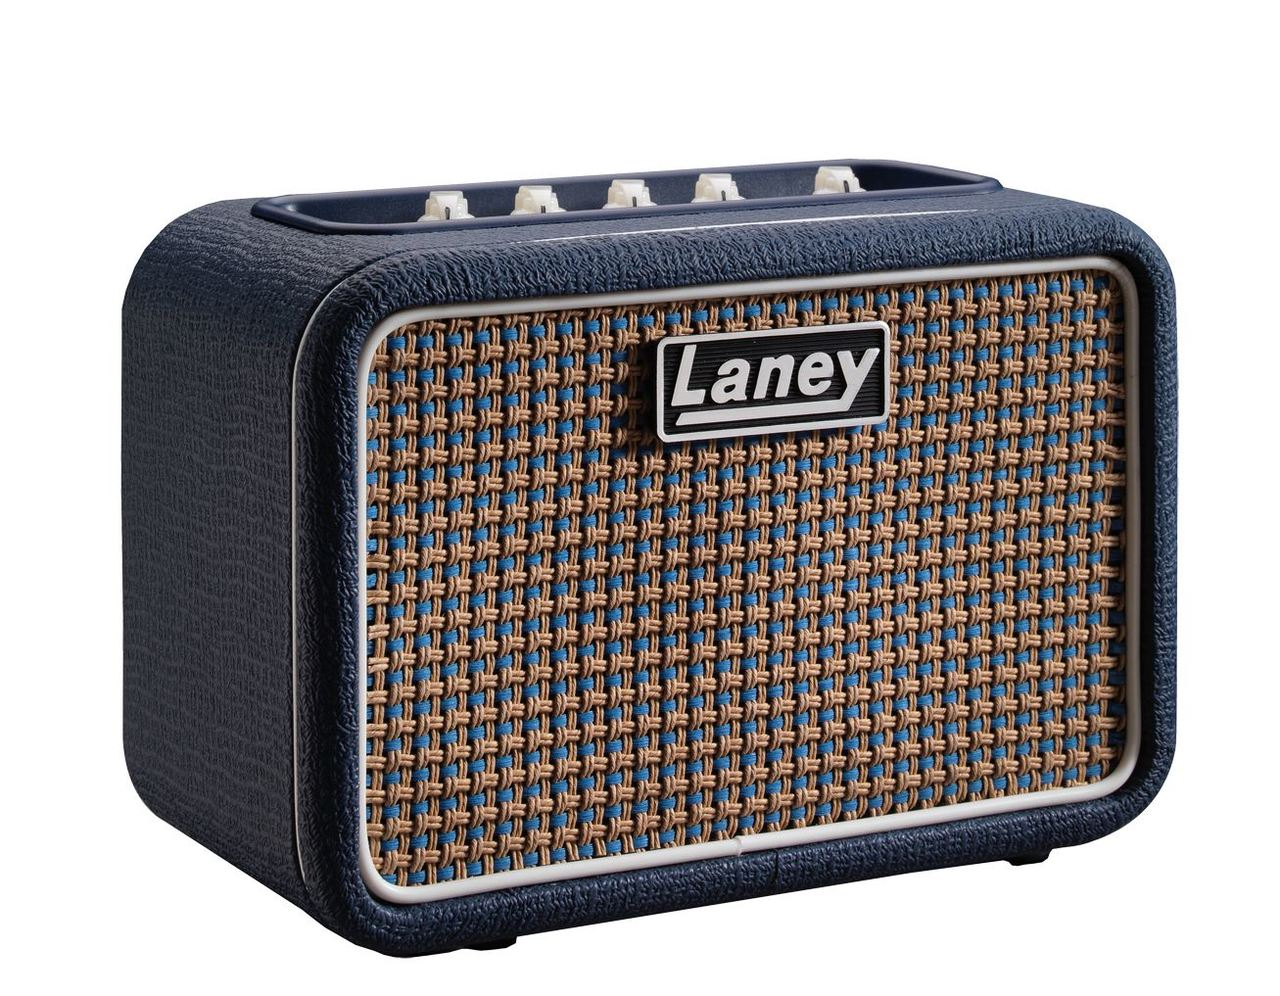 Laney Mini Lion 2 Channel Stereo Amp w/ Smartphone Insert Technology